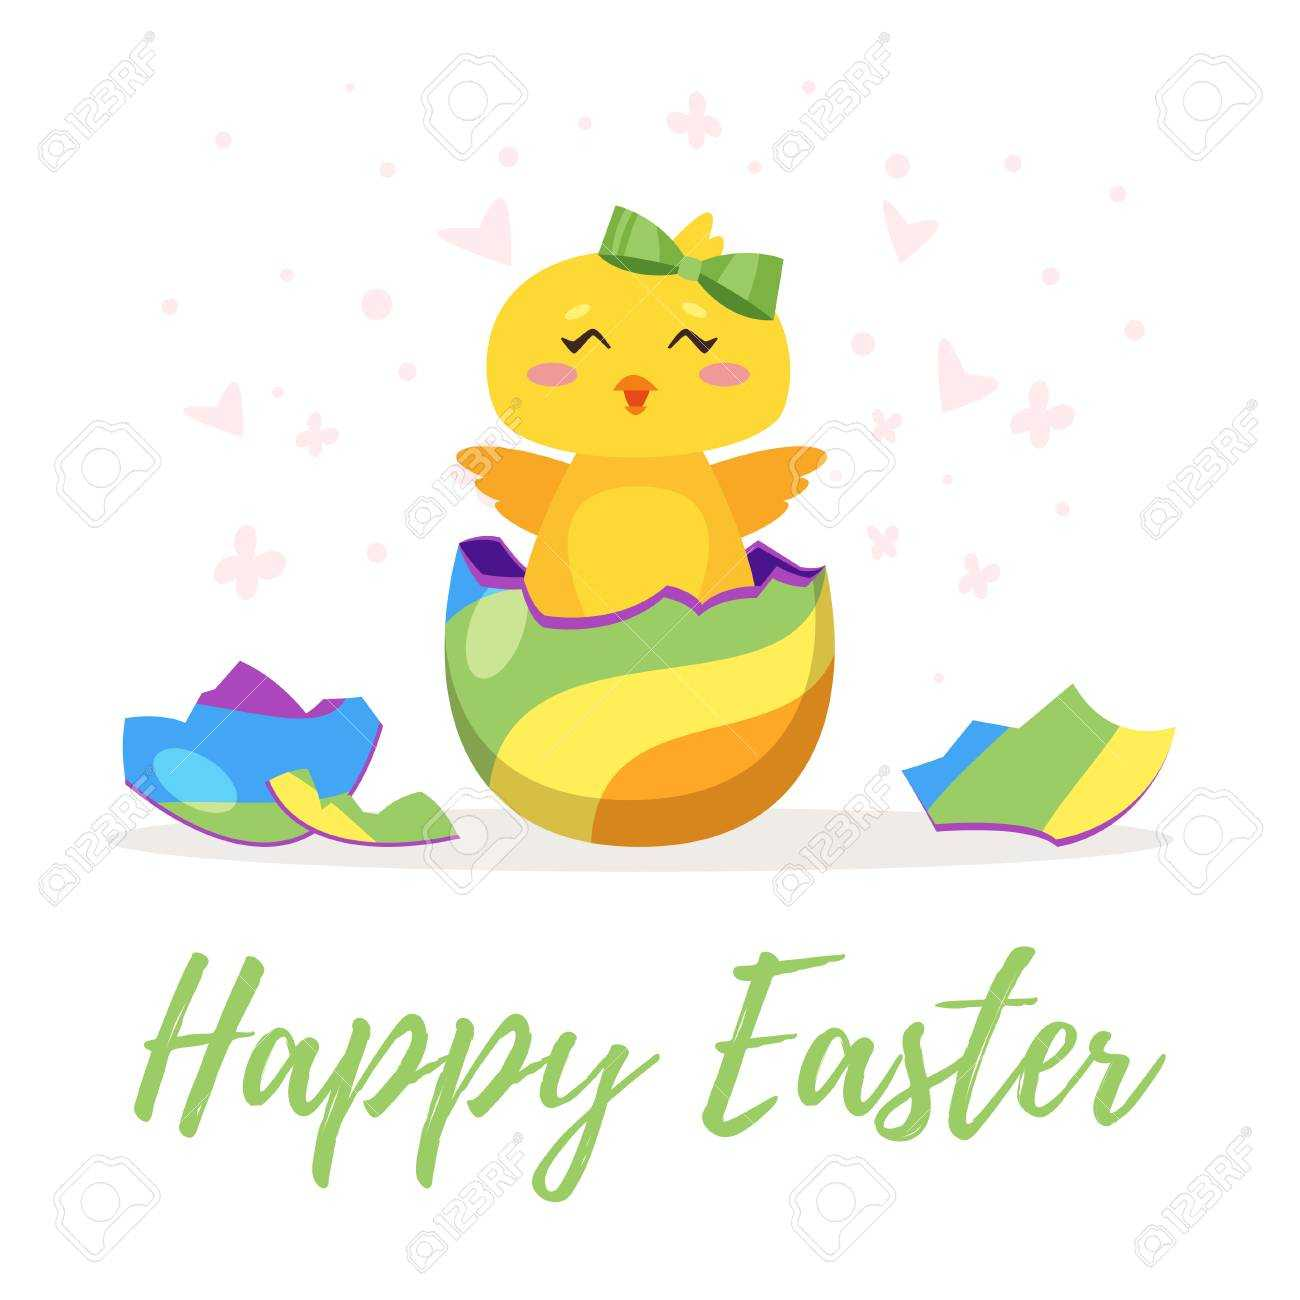 Easter Day Greeting Card Template With Cute Chick Hatched From.. Pertaining To Easter Chick Card Template